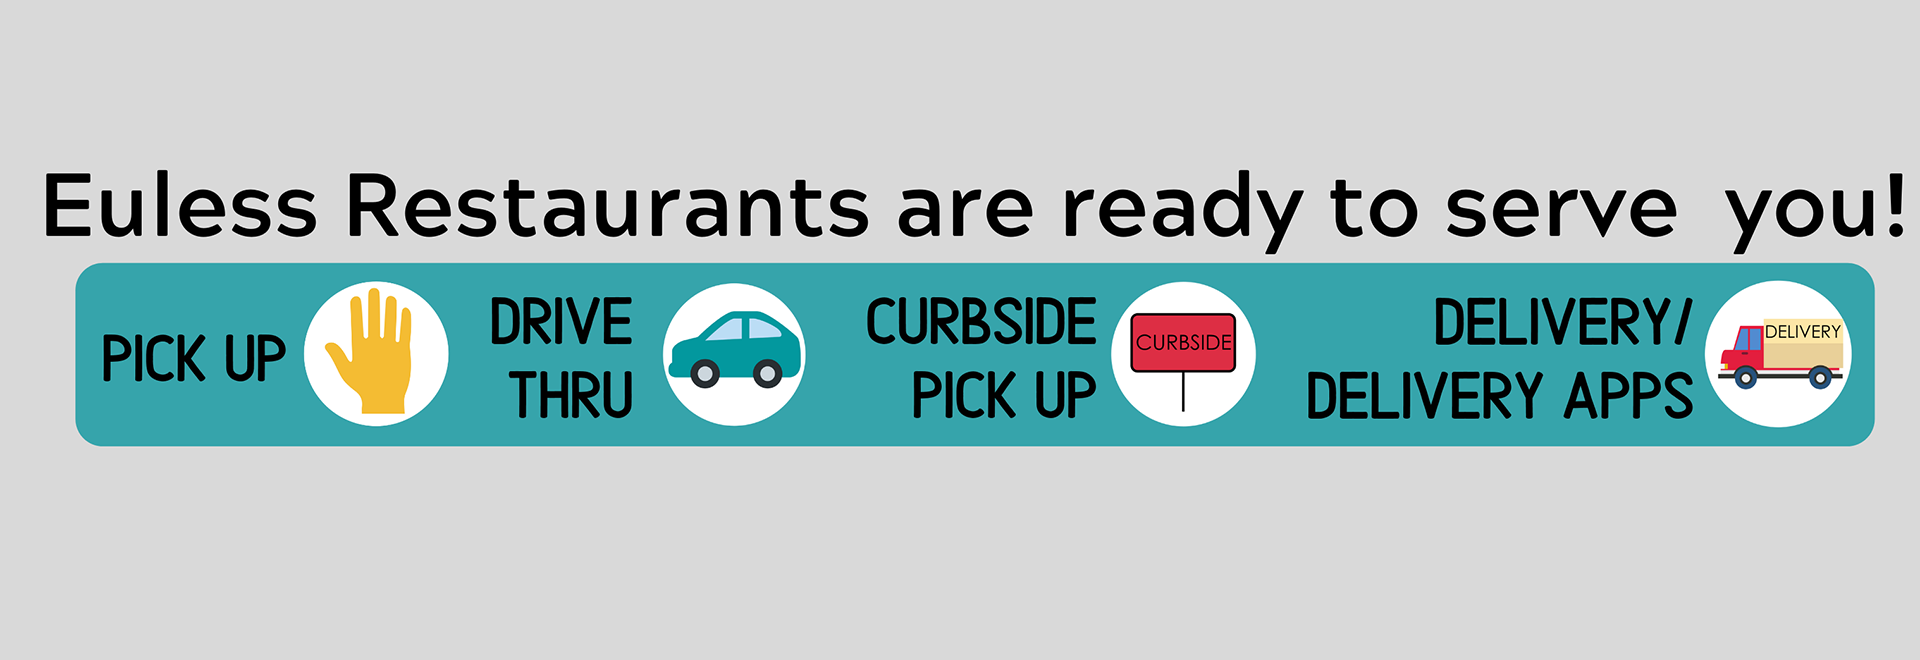 Euless-Restaurants-Are-Ready